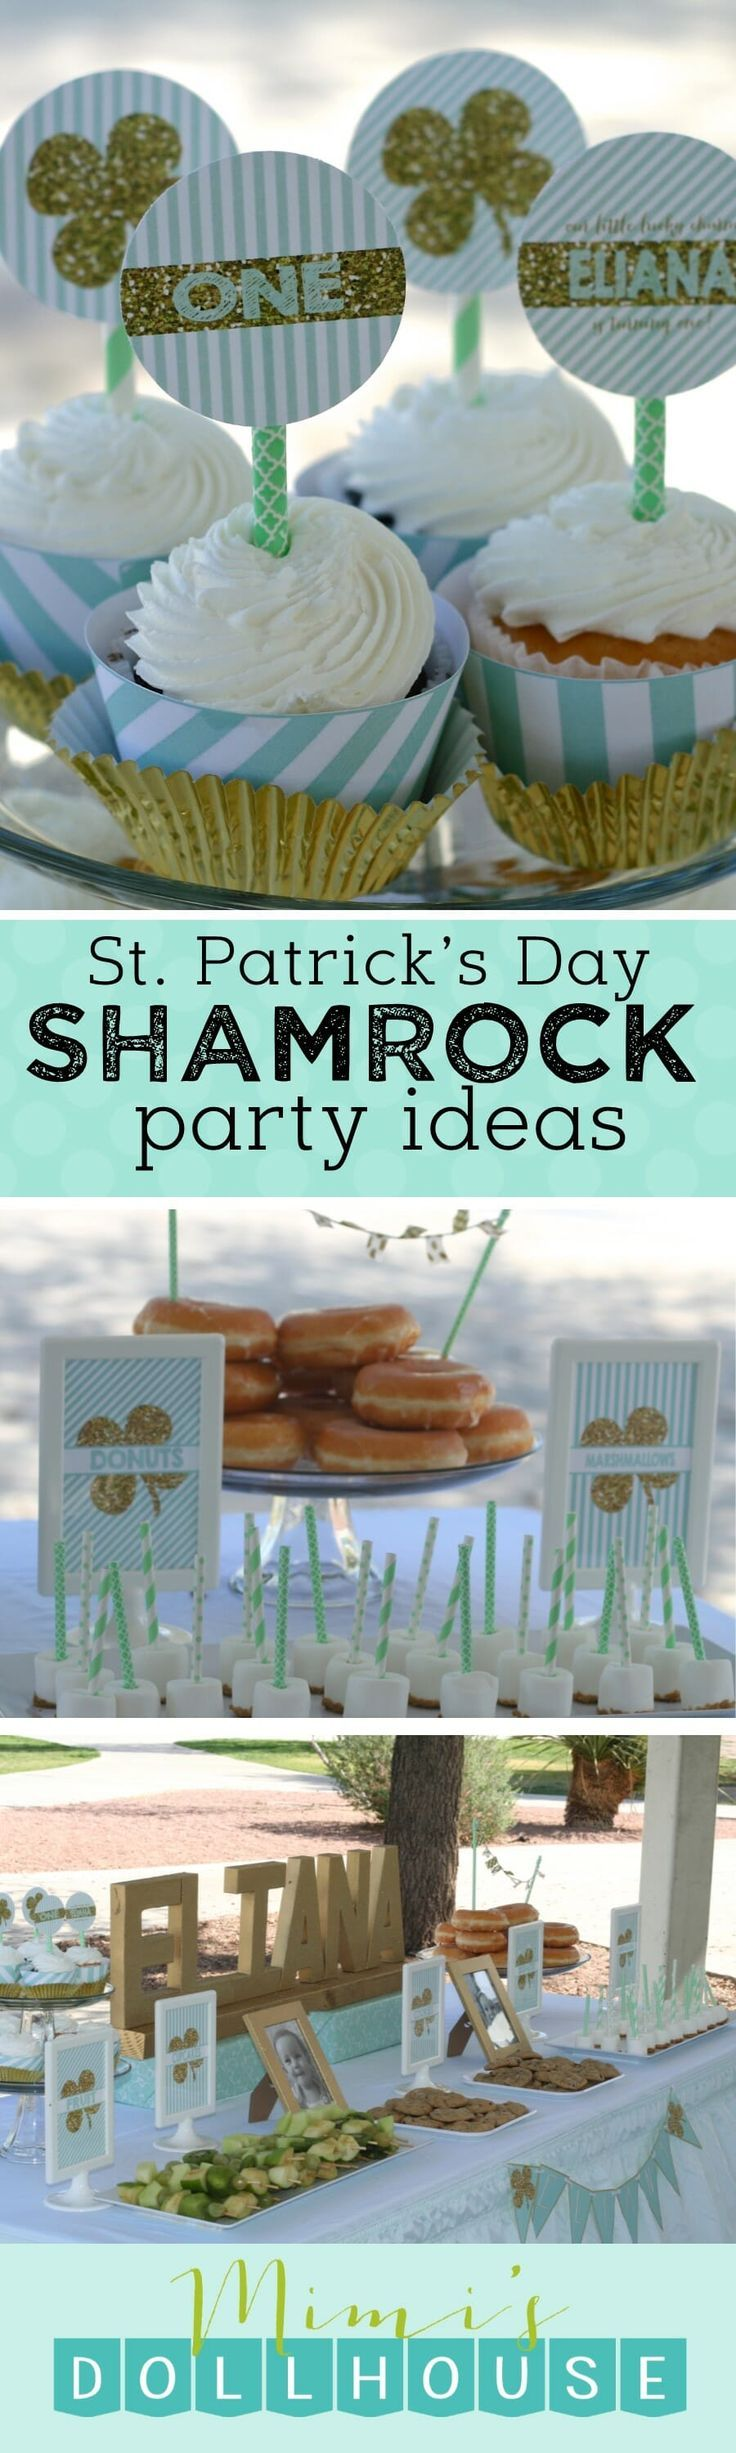 57 best St. Patrick\'s Day Party Ideas images on Pinterest | Crafts ...